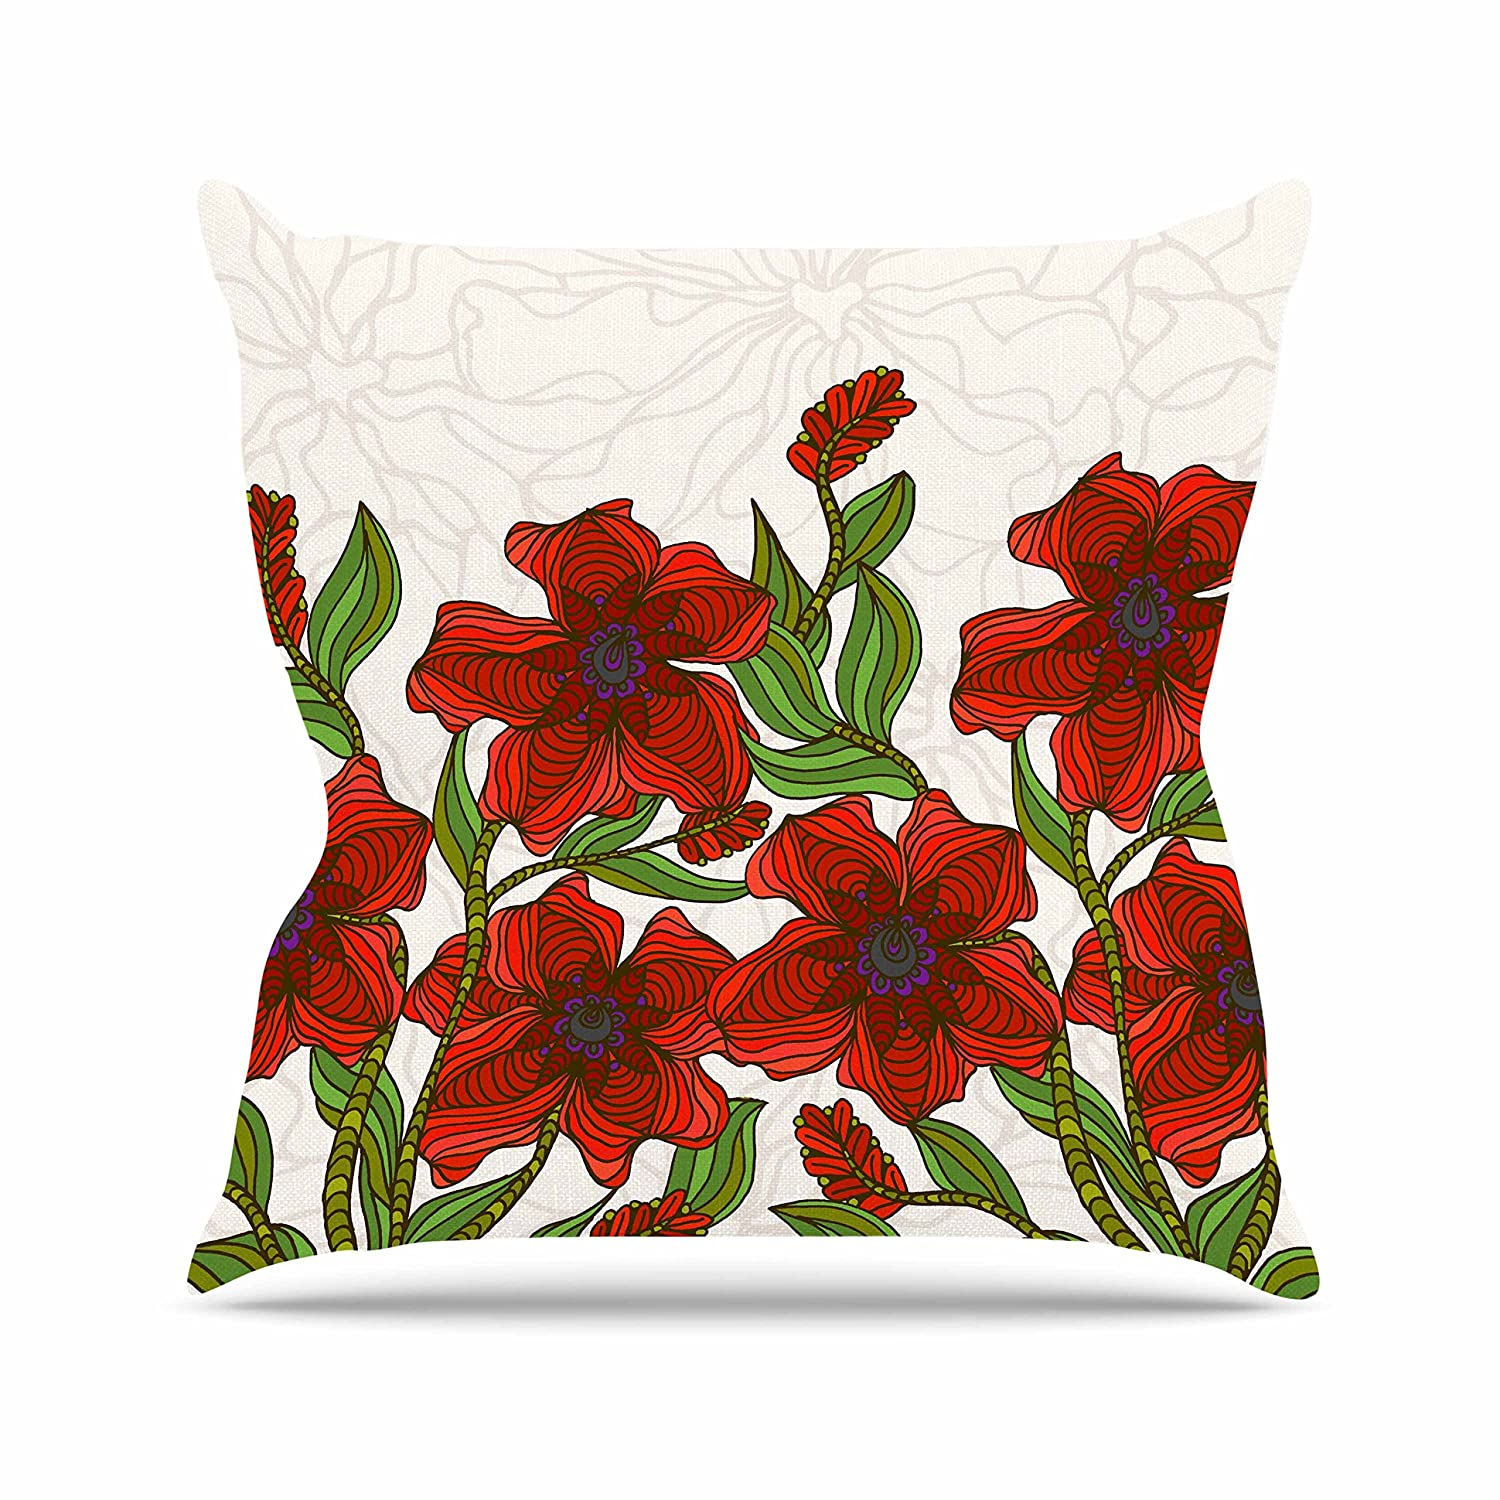 18 by 18 Kess InHouse Art Love Passion Poppy Field Red Beige Throw Pillow